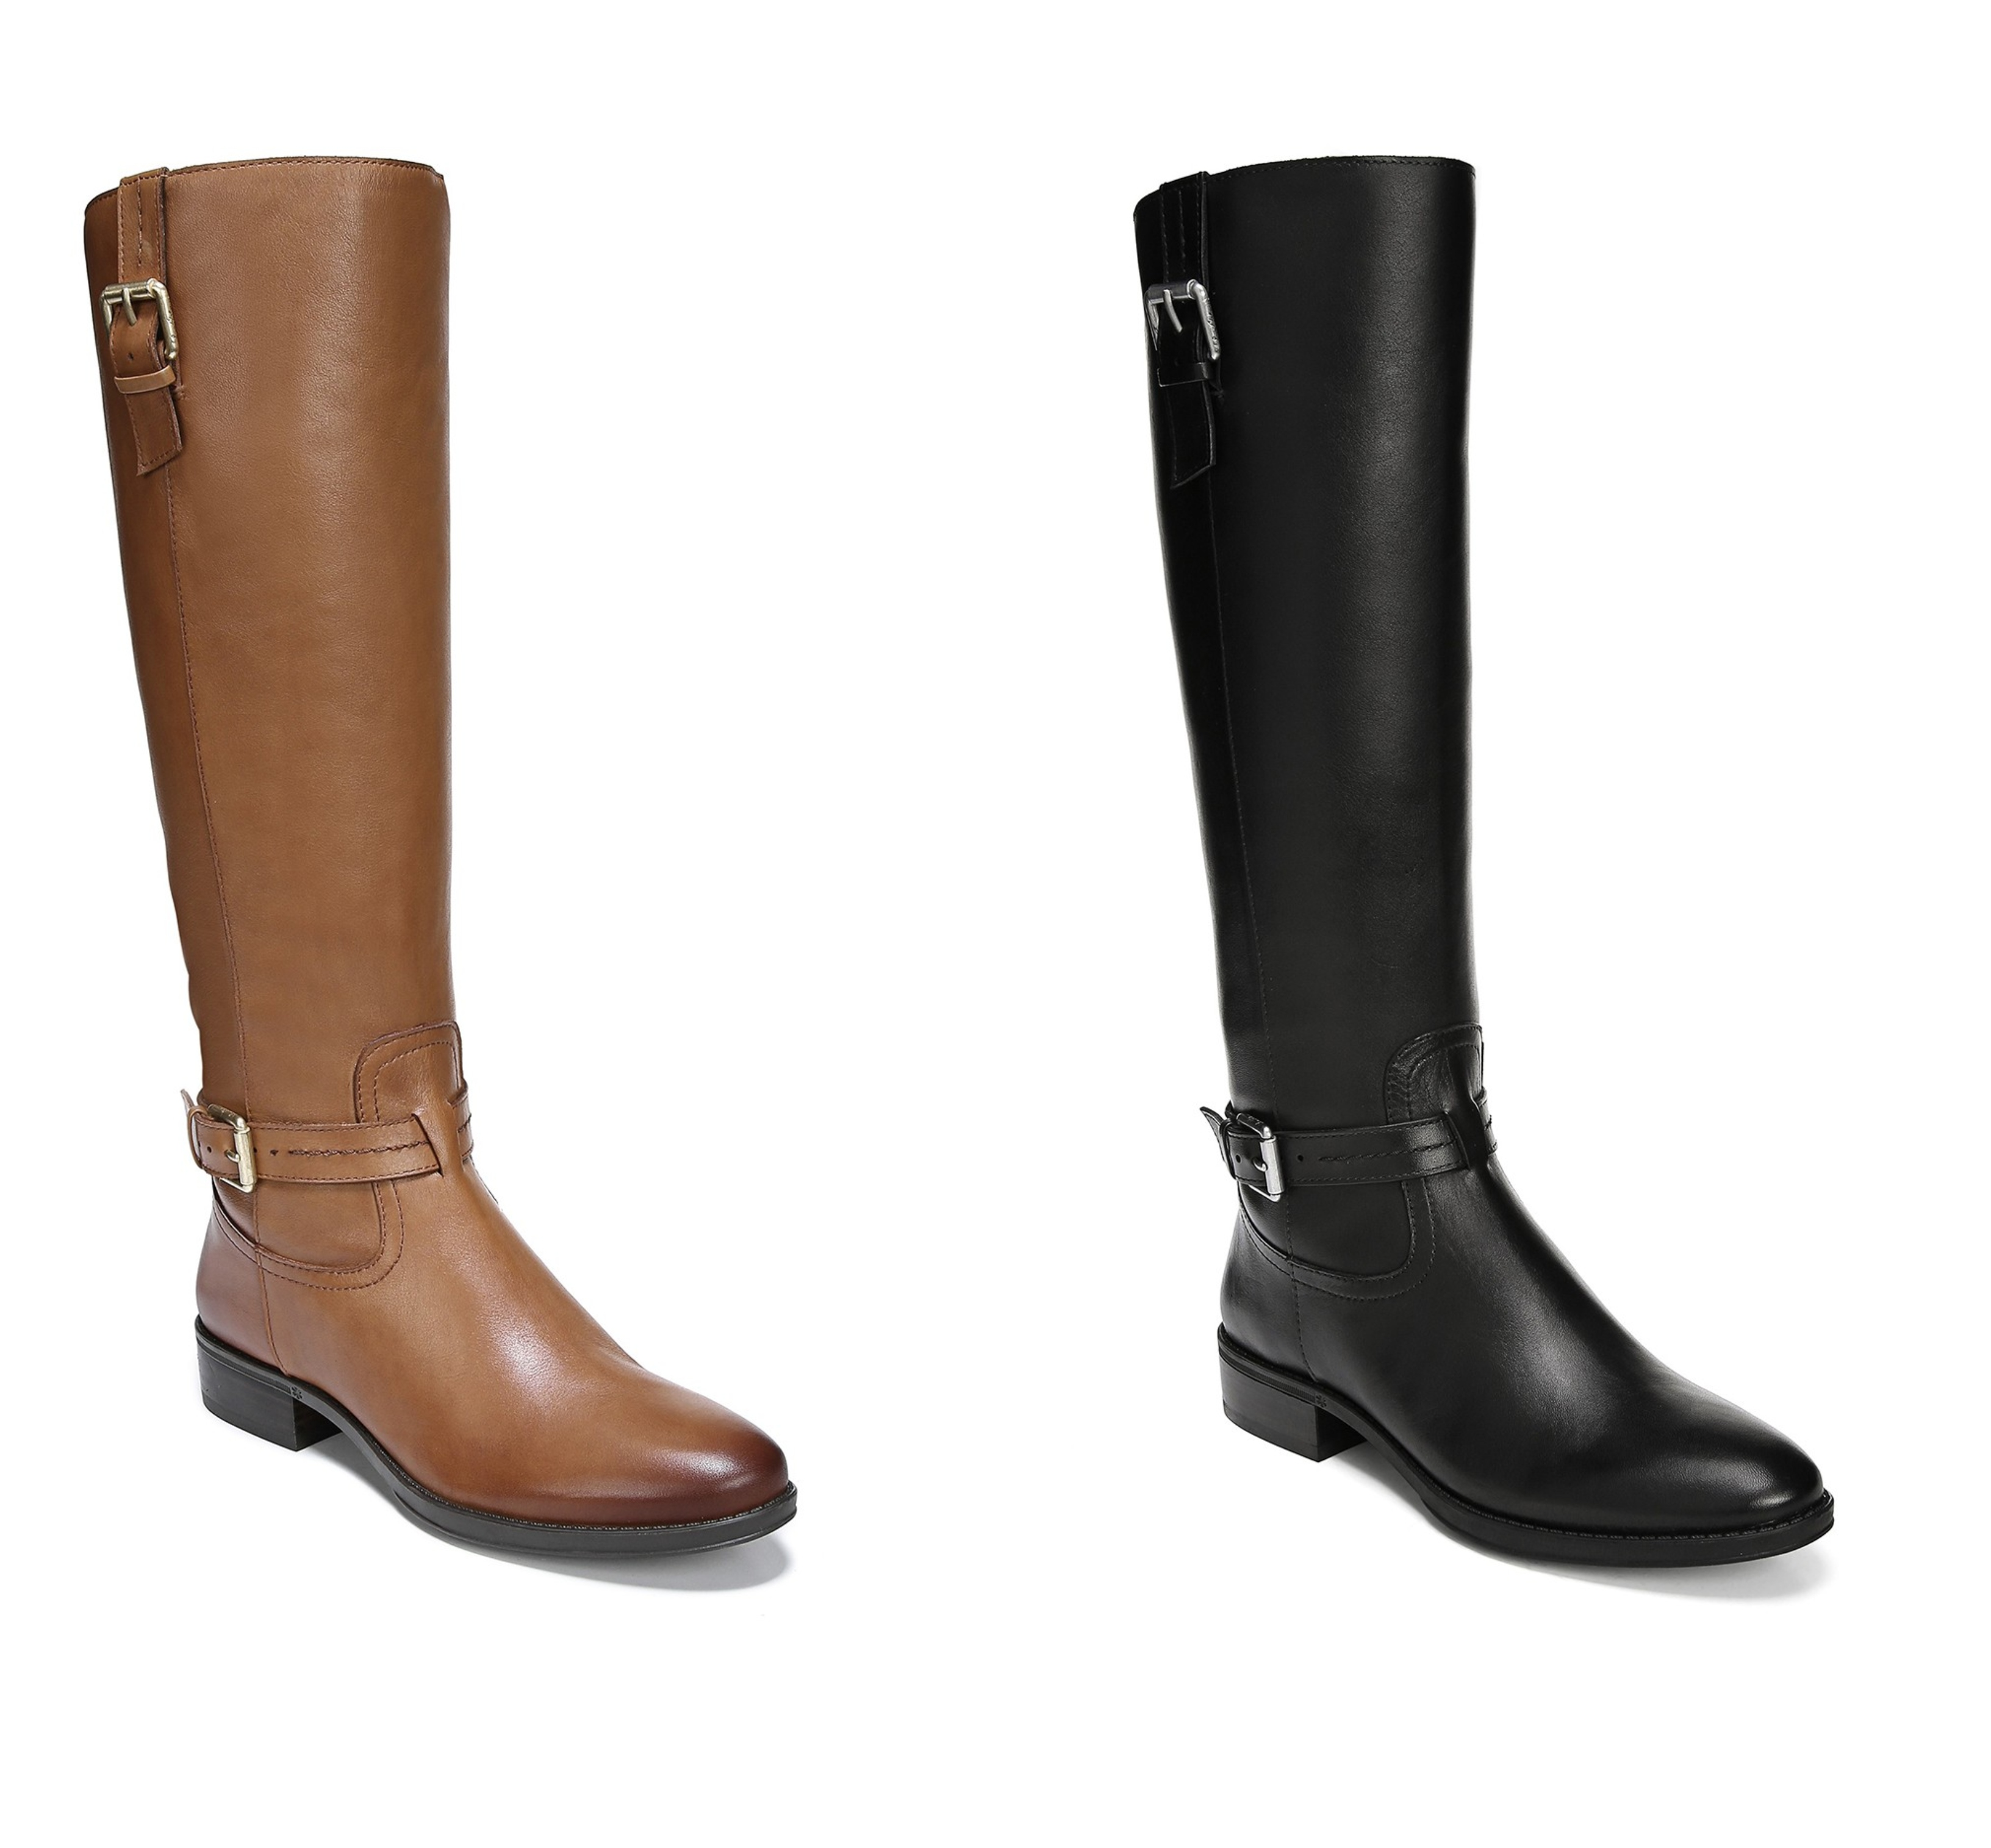 72e26fdb3 Nordstrom Rack  Sam Edelman Ponce Buckle Tall Boots – only  70 (reg  180)!